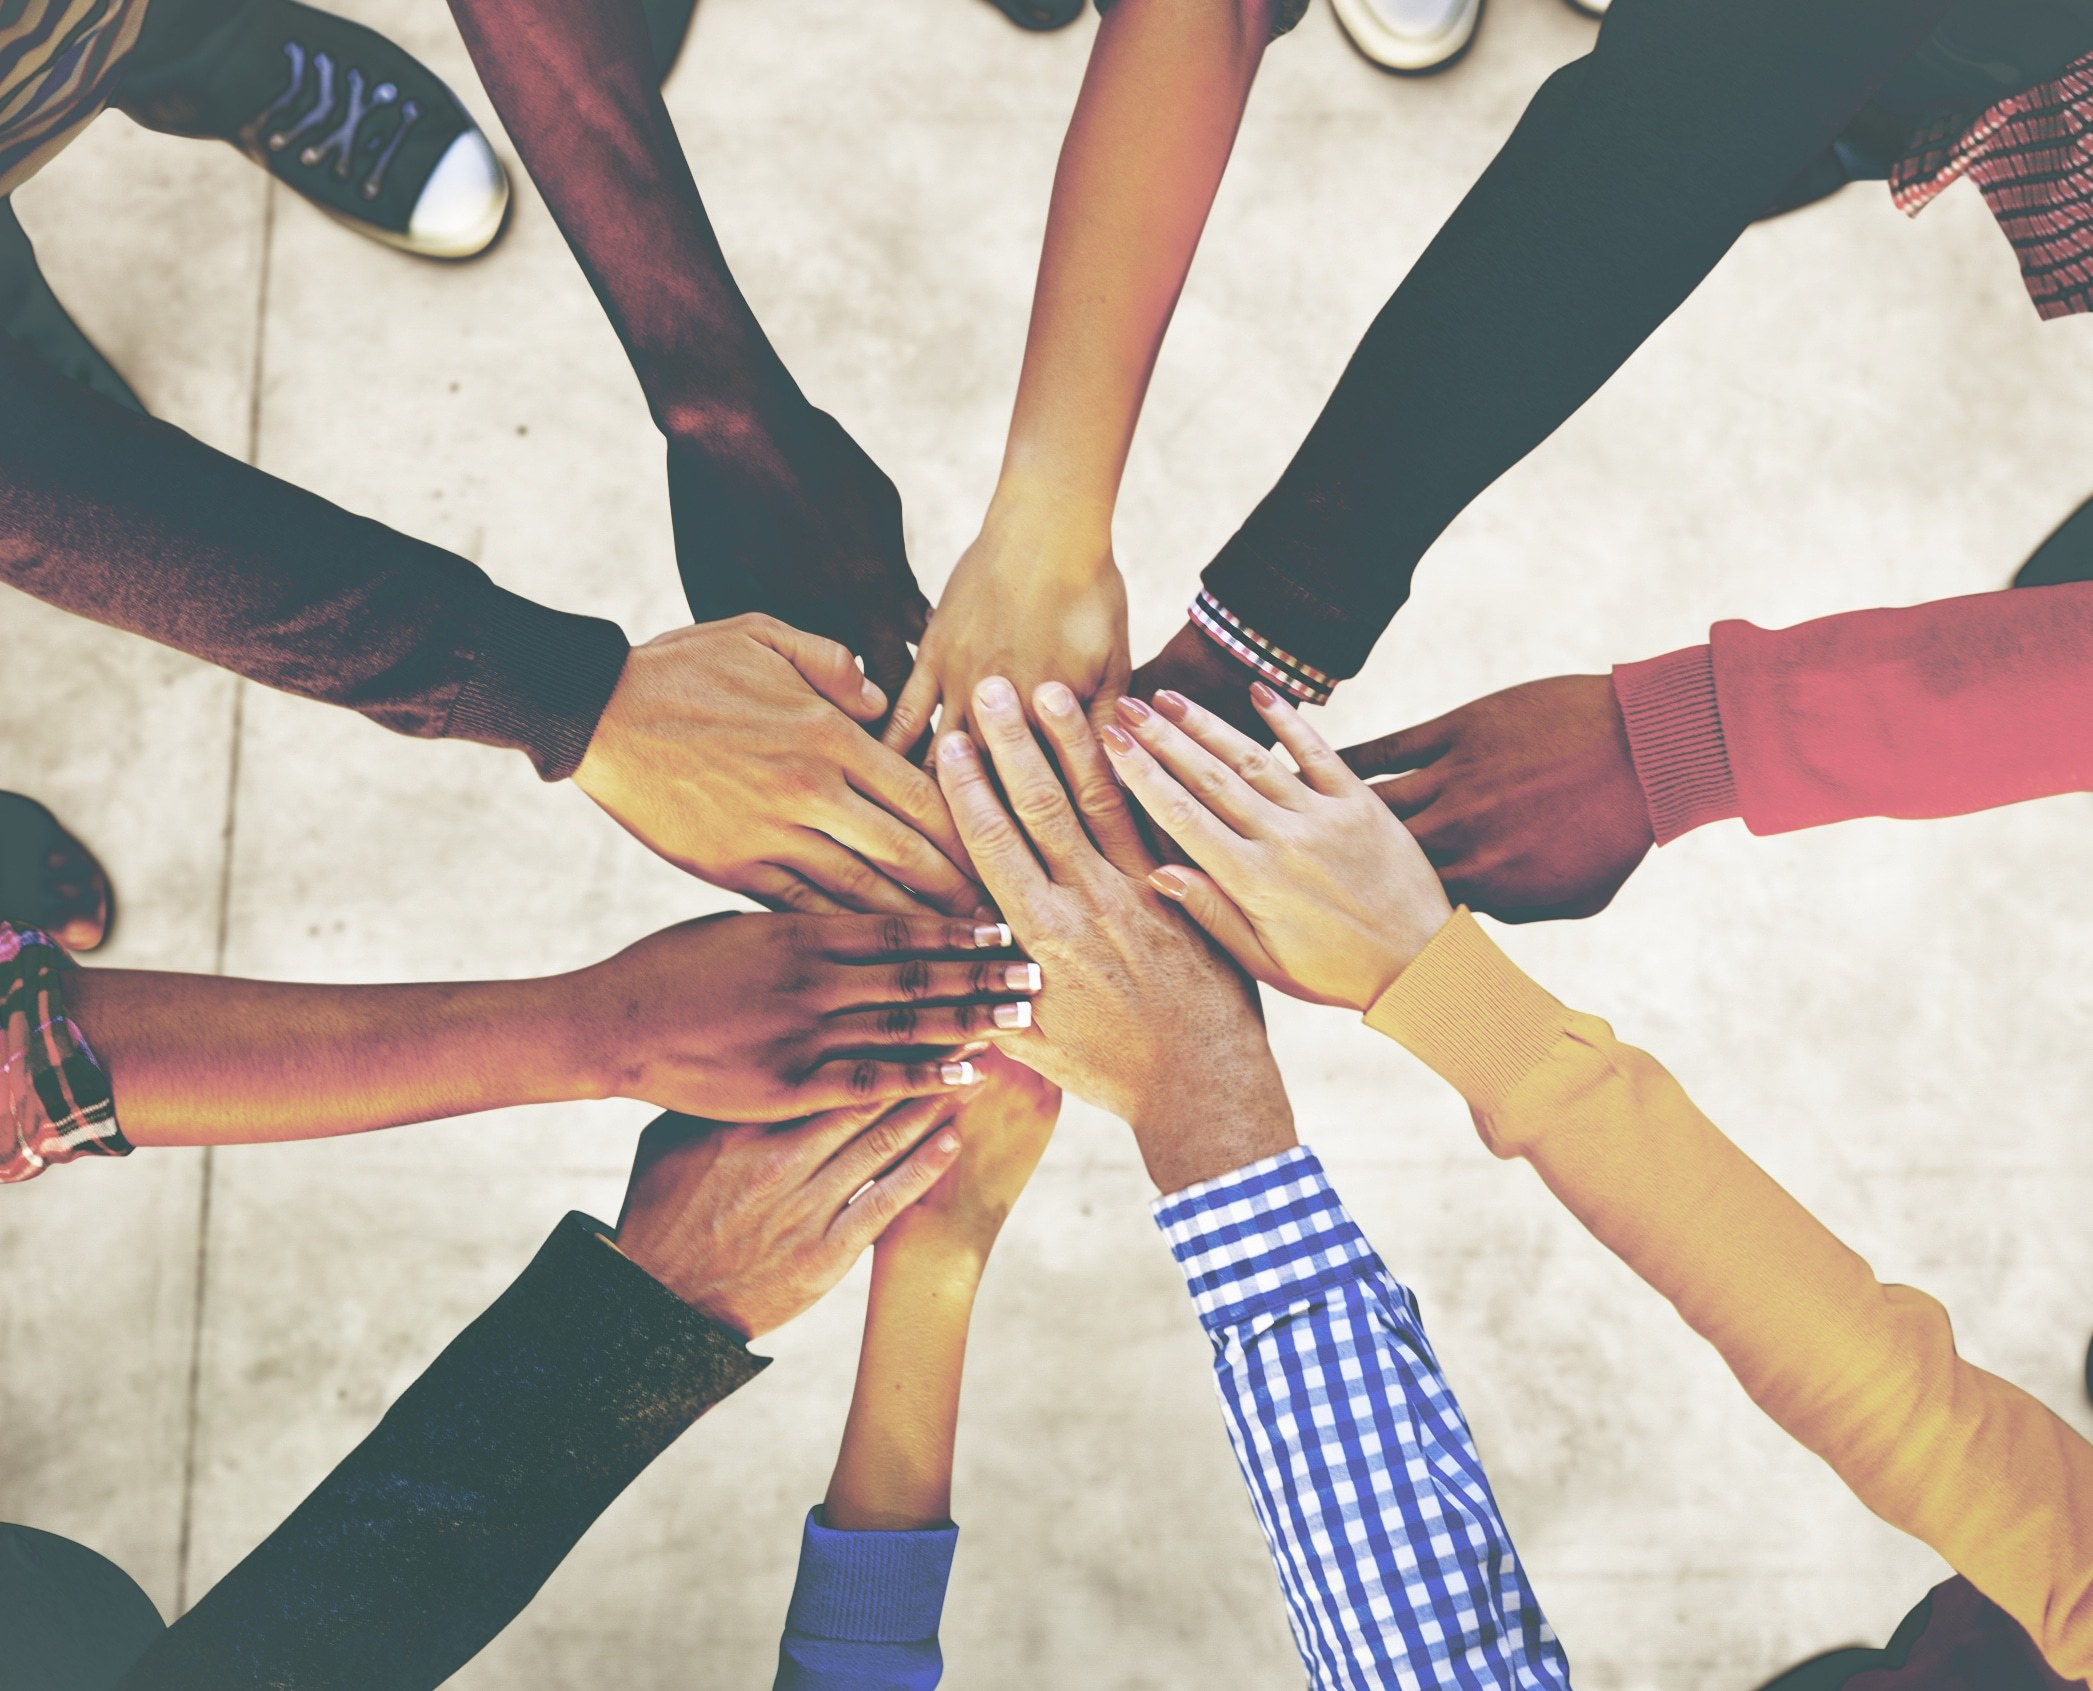 5 Ways Leadership Can Support Diversity and Inclusion